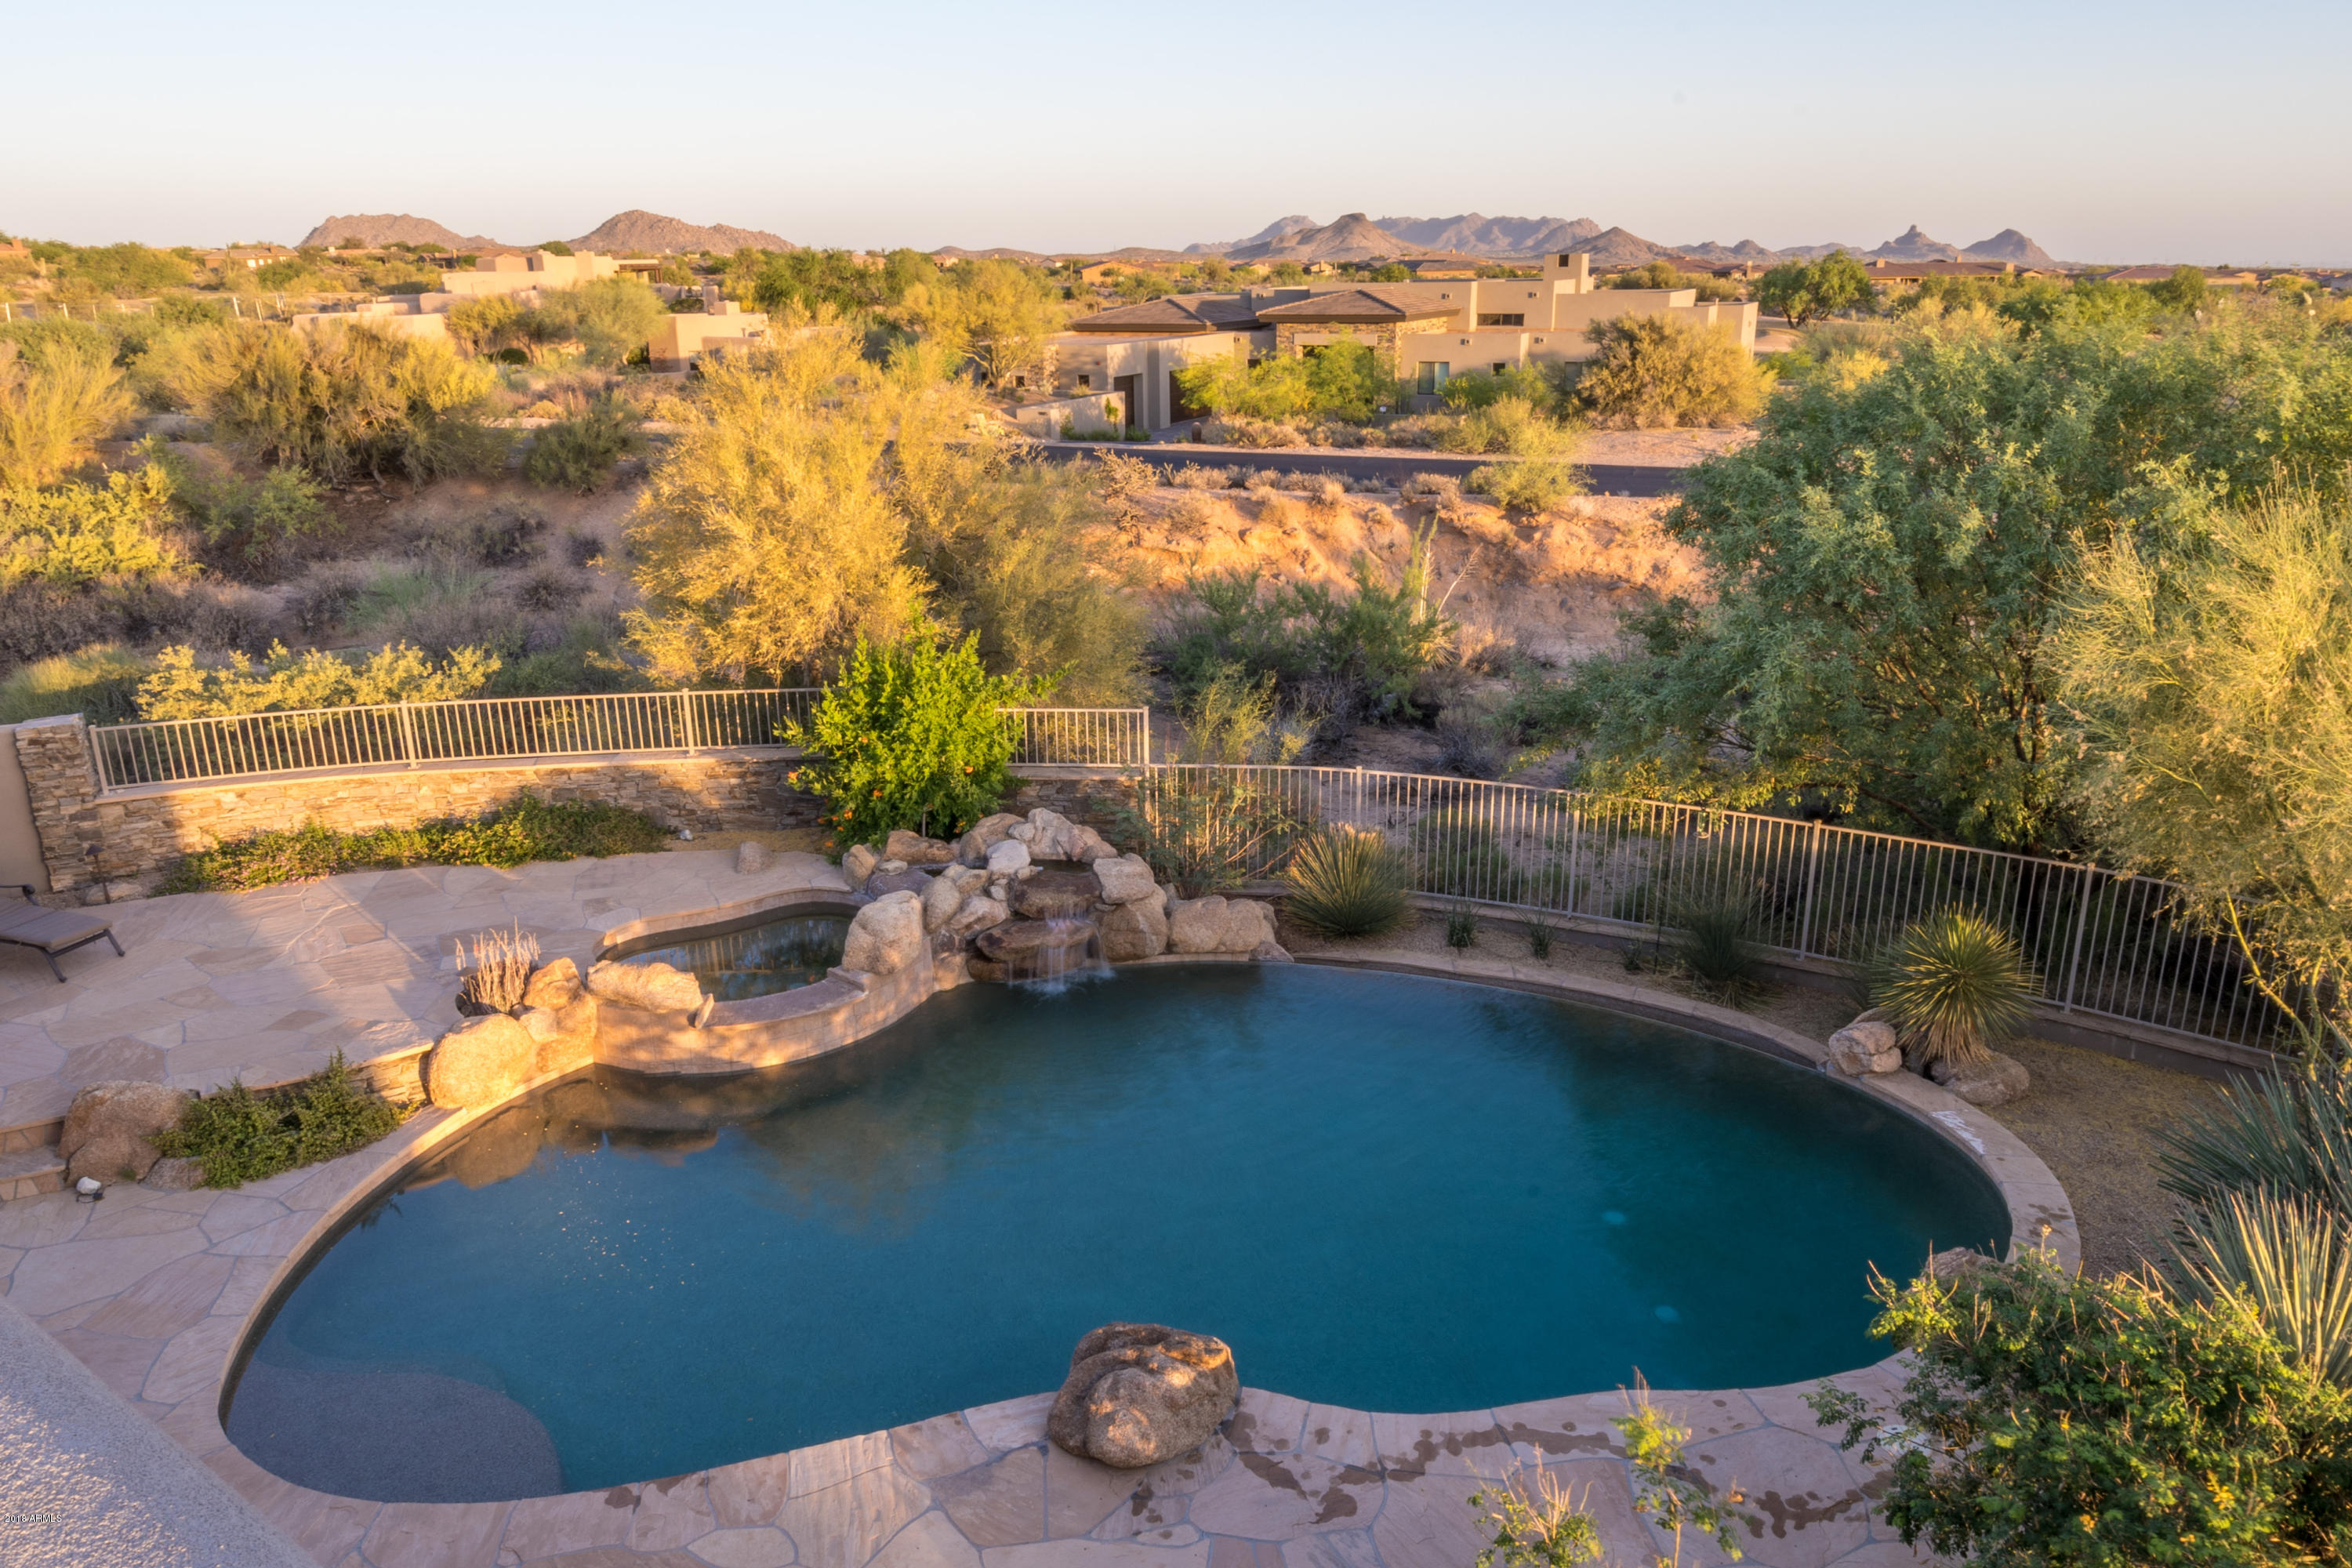 MLS 5900932 37870 N 98TH Place, Scottsdale, AZ 85262 Scottsdale AZ Private Pool